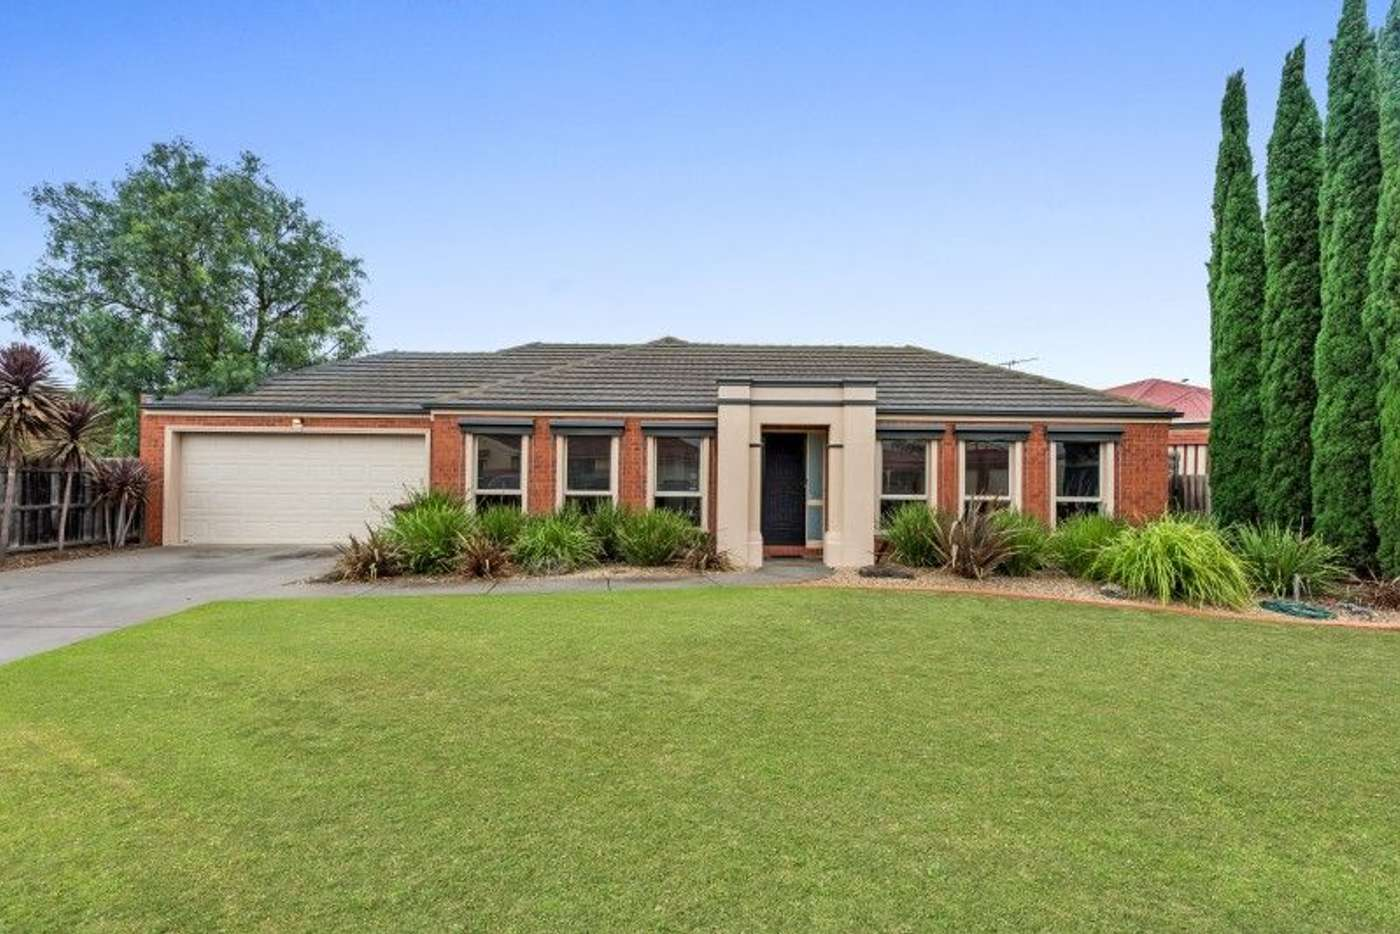 Main view of Homely house listing, 14 Magpie Close, Lara VIC 3212